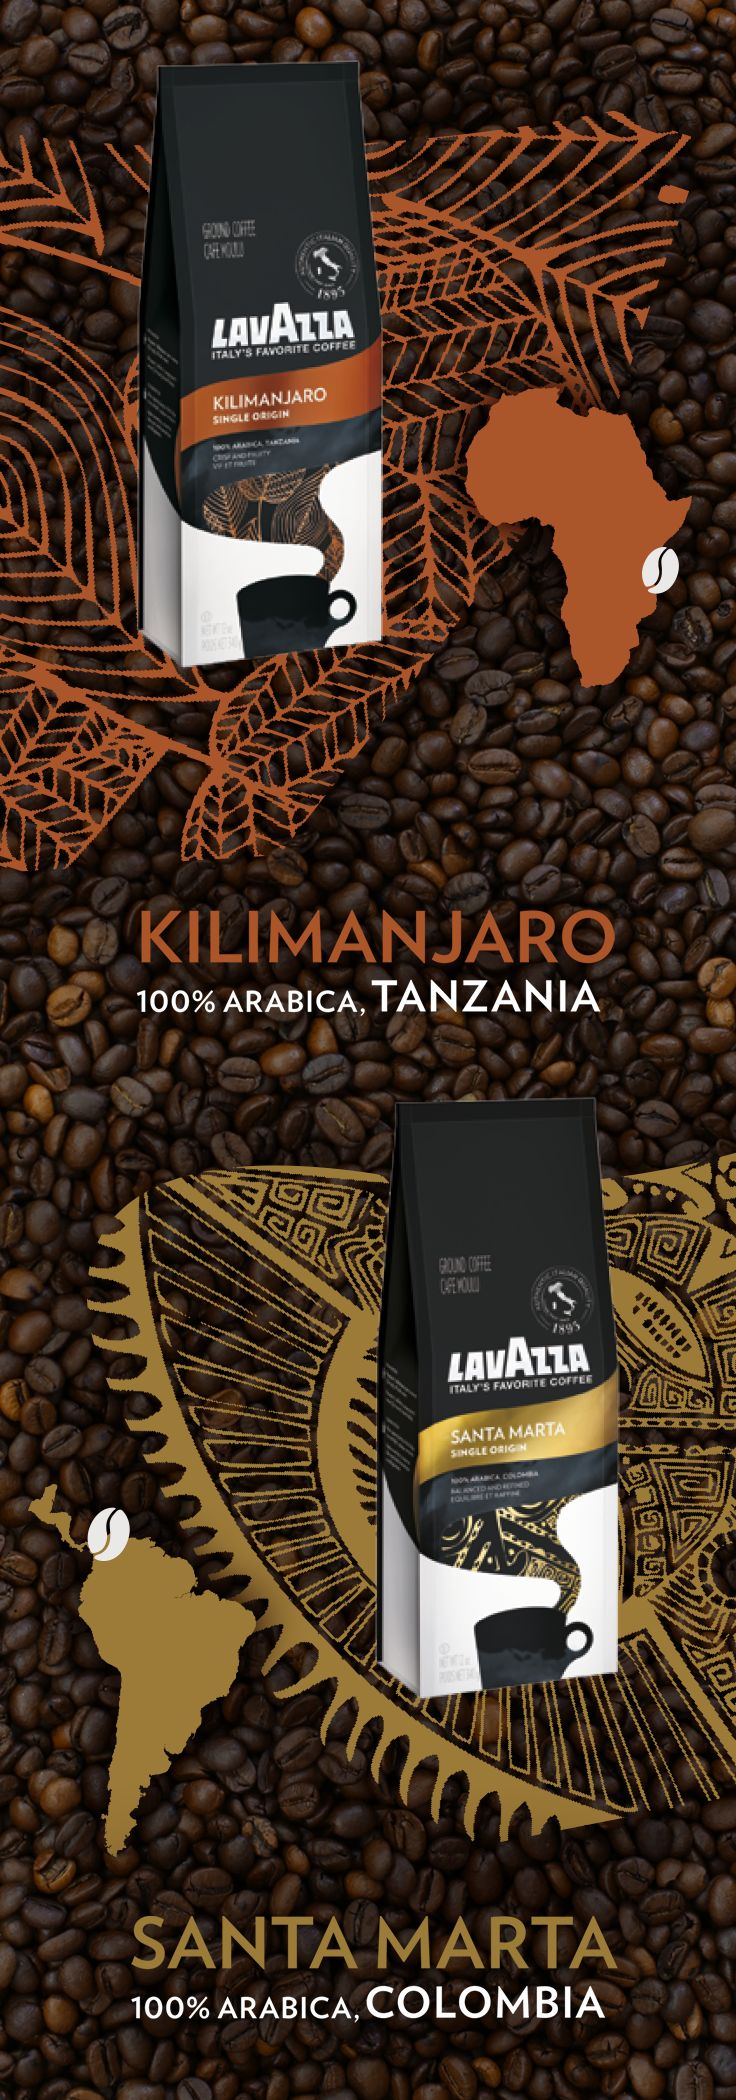 Crafted from 100% Arabica beans, Lavazza's new single origin coffees capture the unique flavors of the Santa Marta and Kilimanjaro regions.